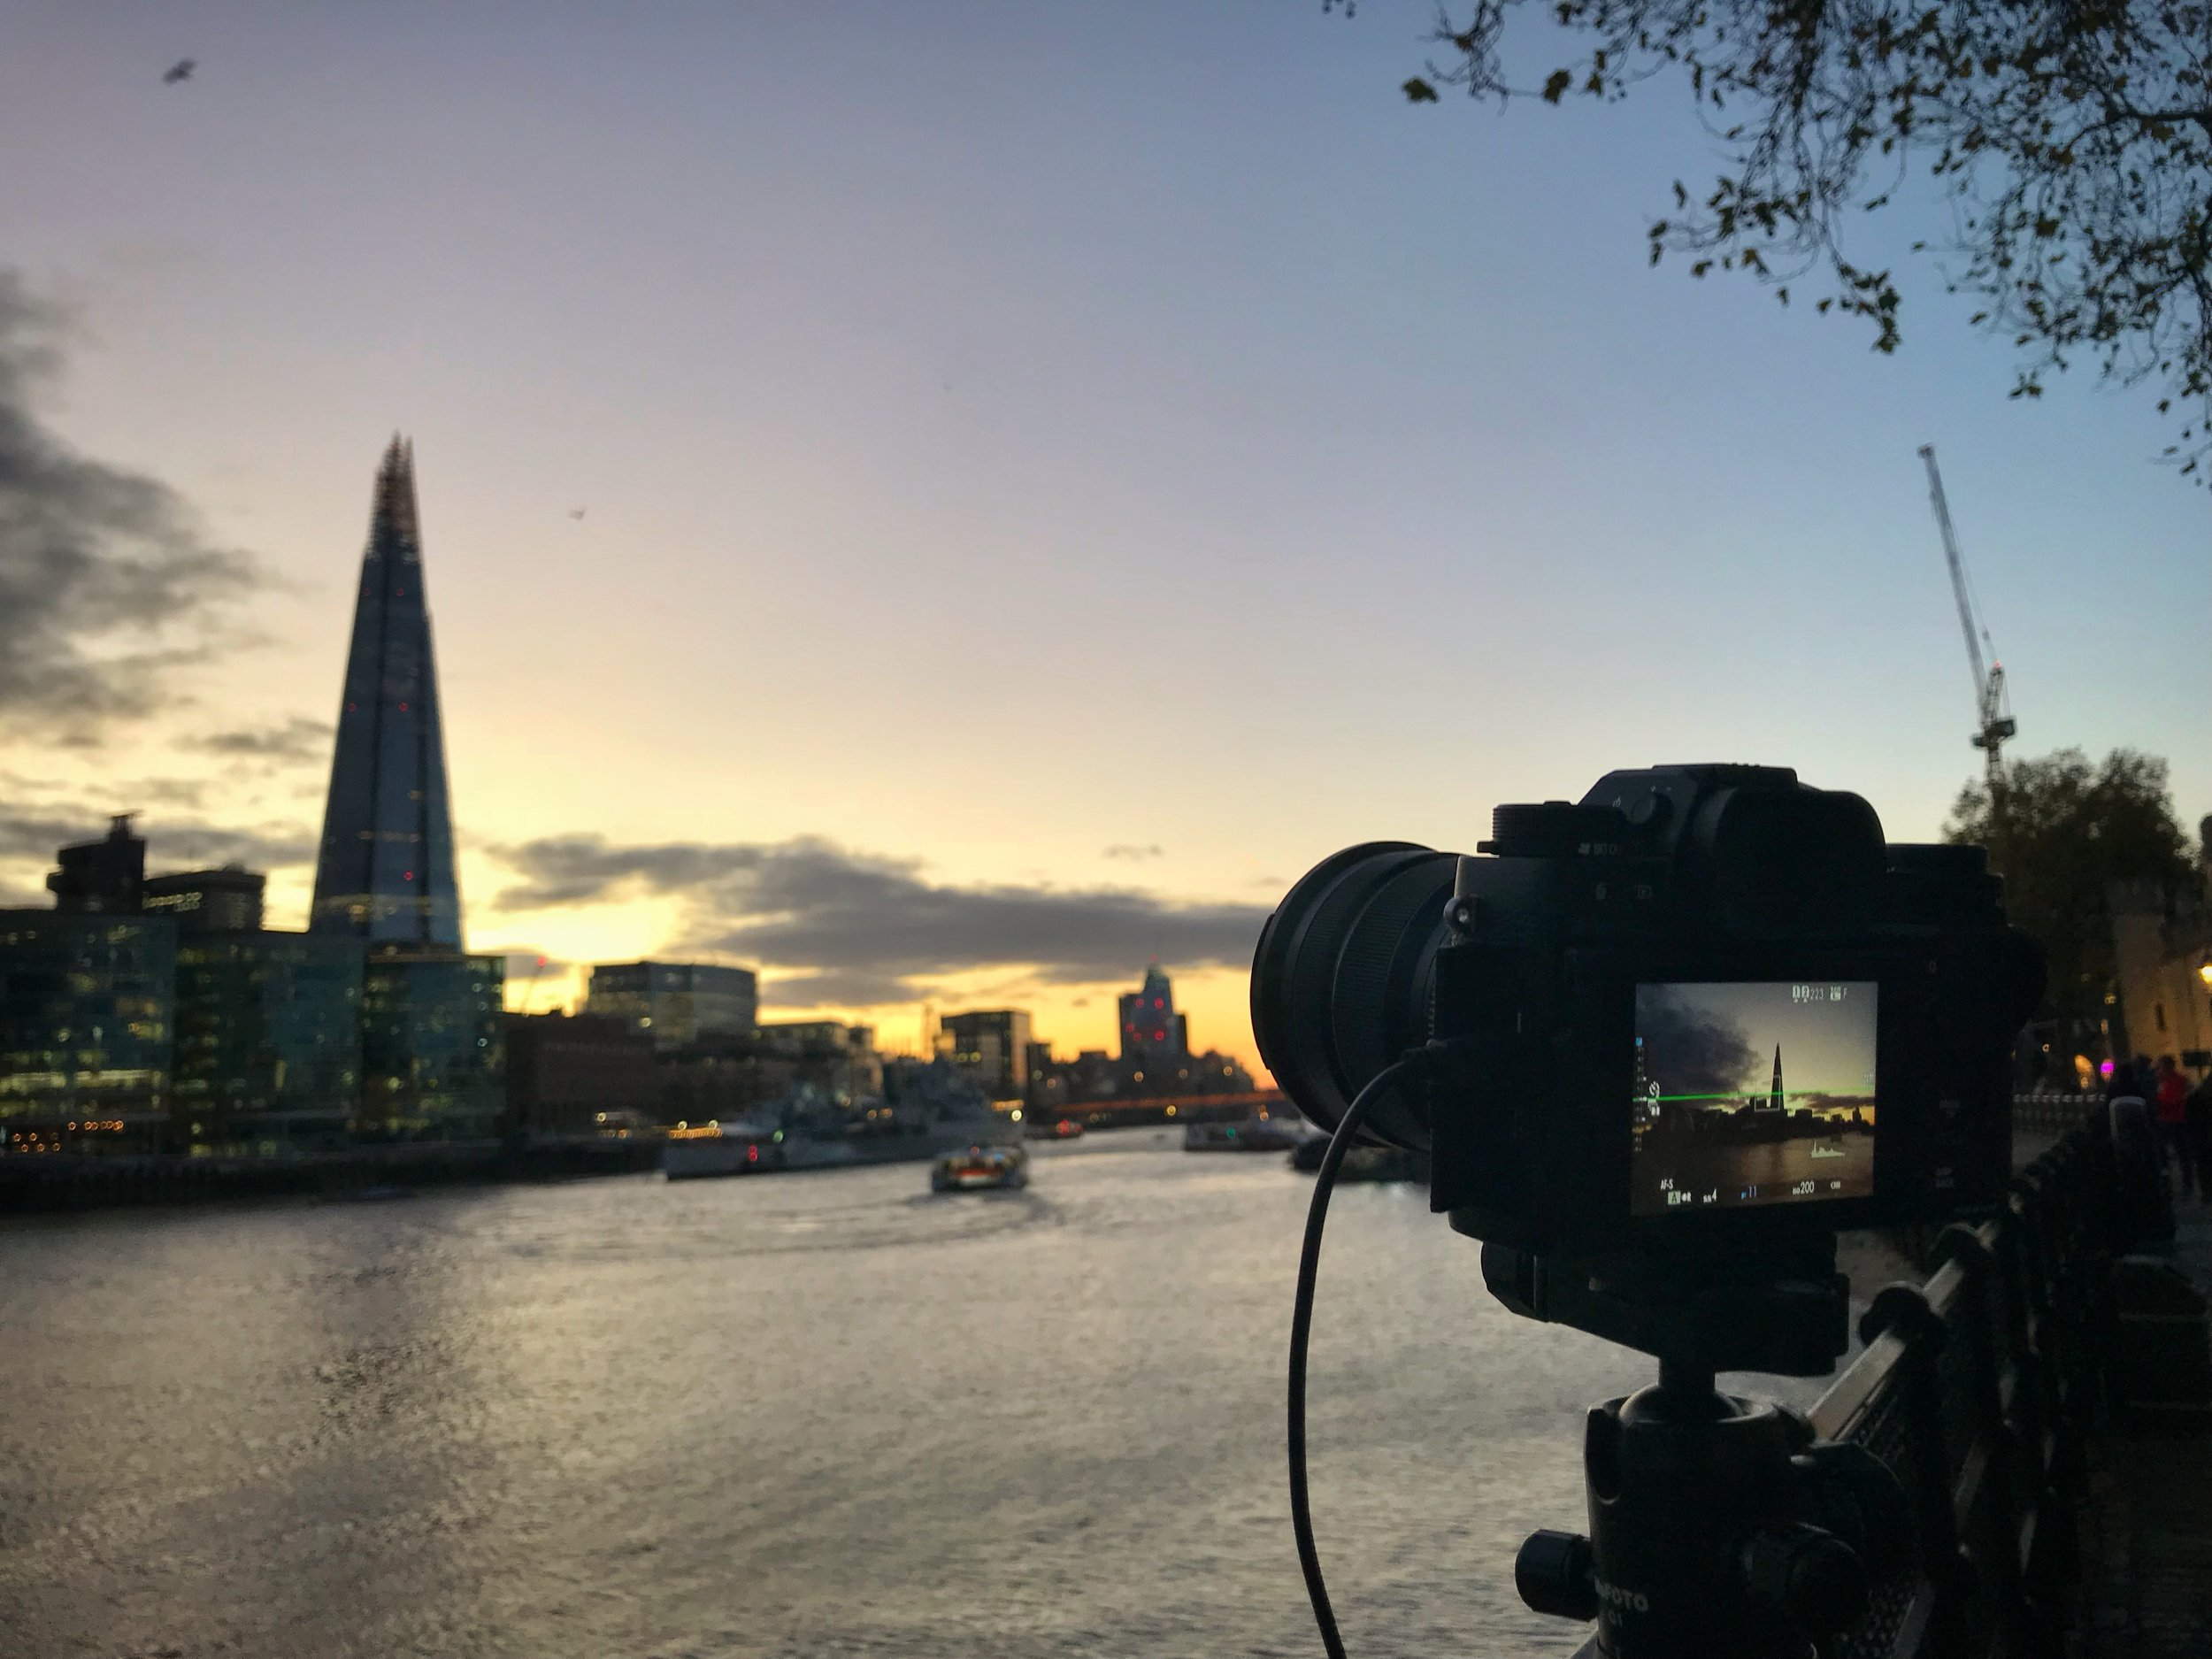 Behind the camera photo of the Fujifilm XT2 at the Shard by Trevor Sherwin